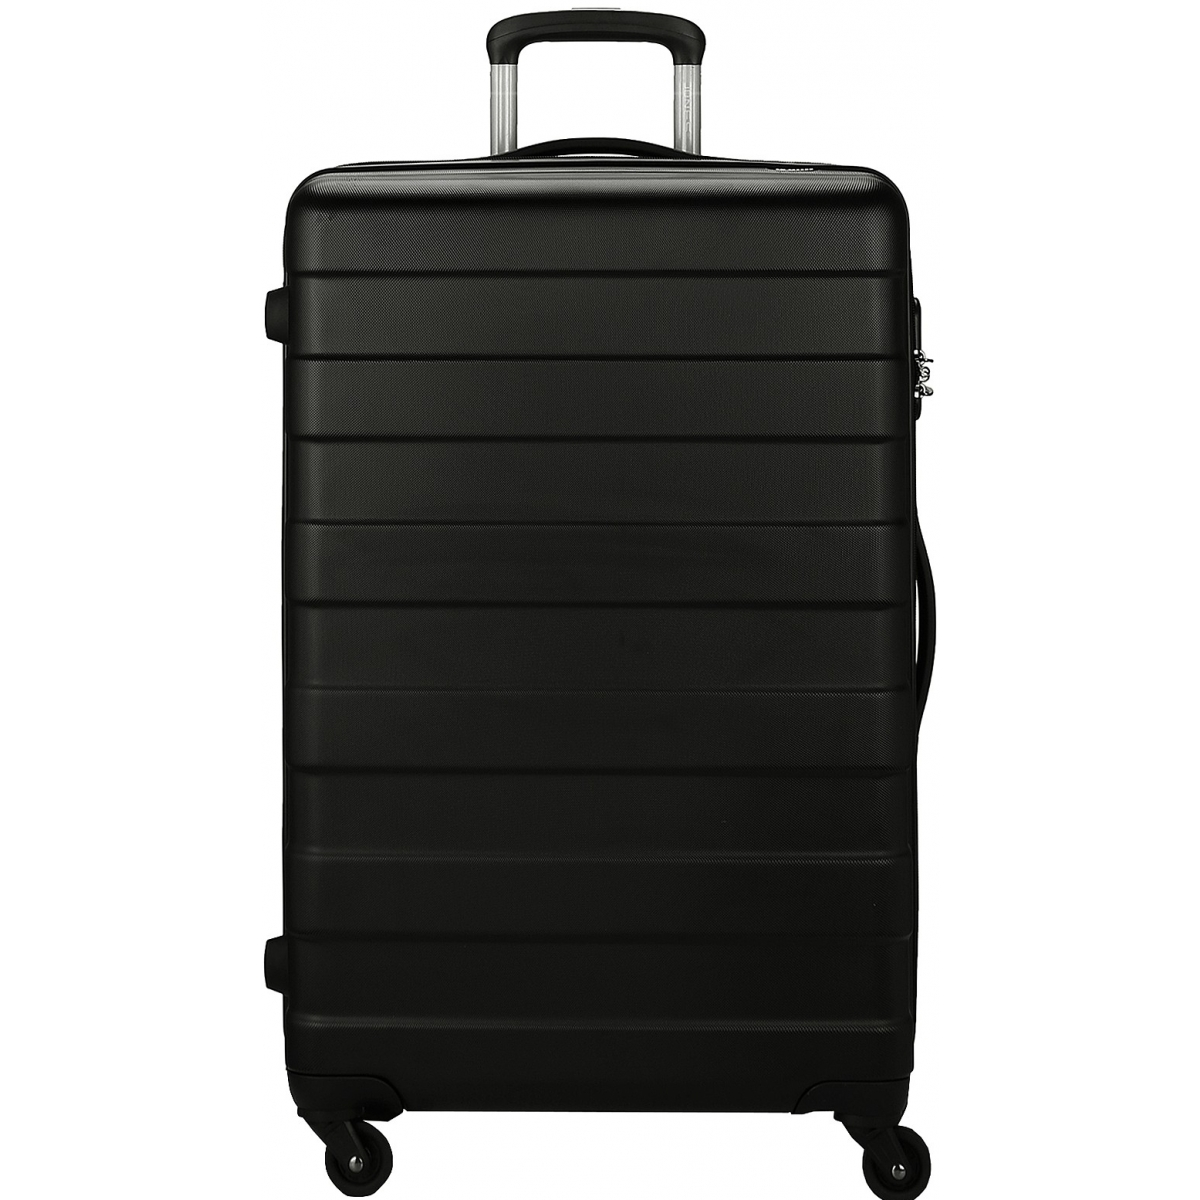 valise rigide david jones 76cm ba10161g couleur principale black valise pas cher. Black Bedroom Furniture Sets. Home Design Ideas